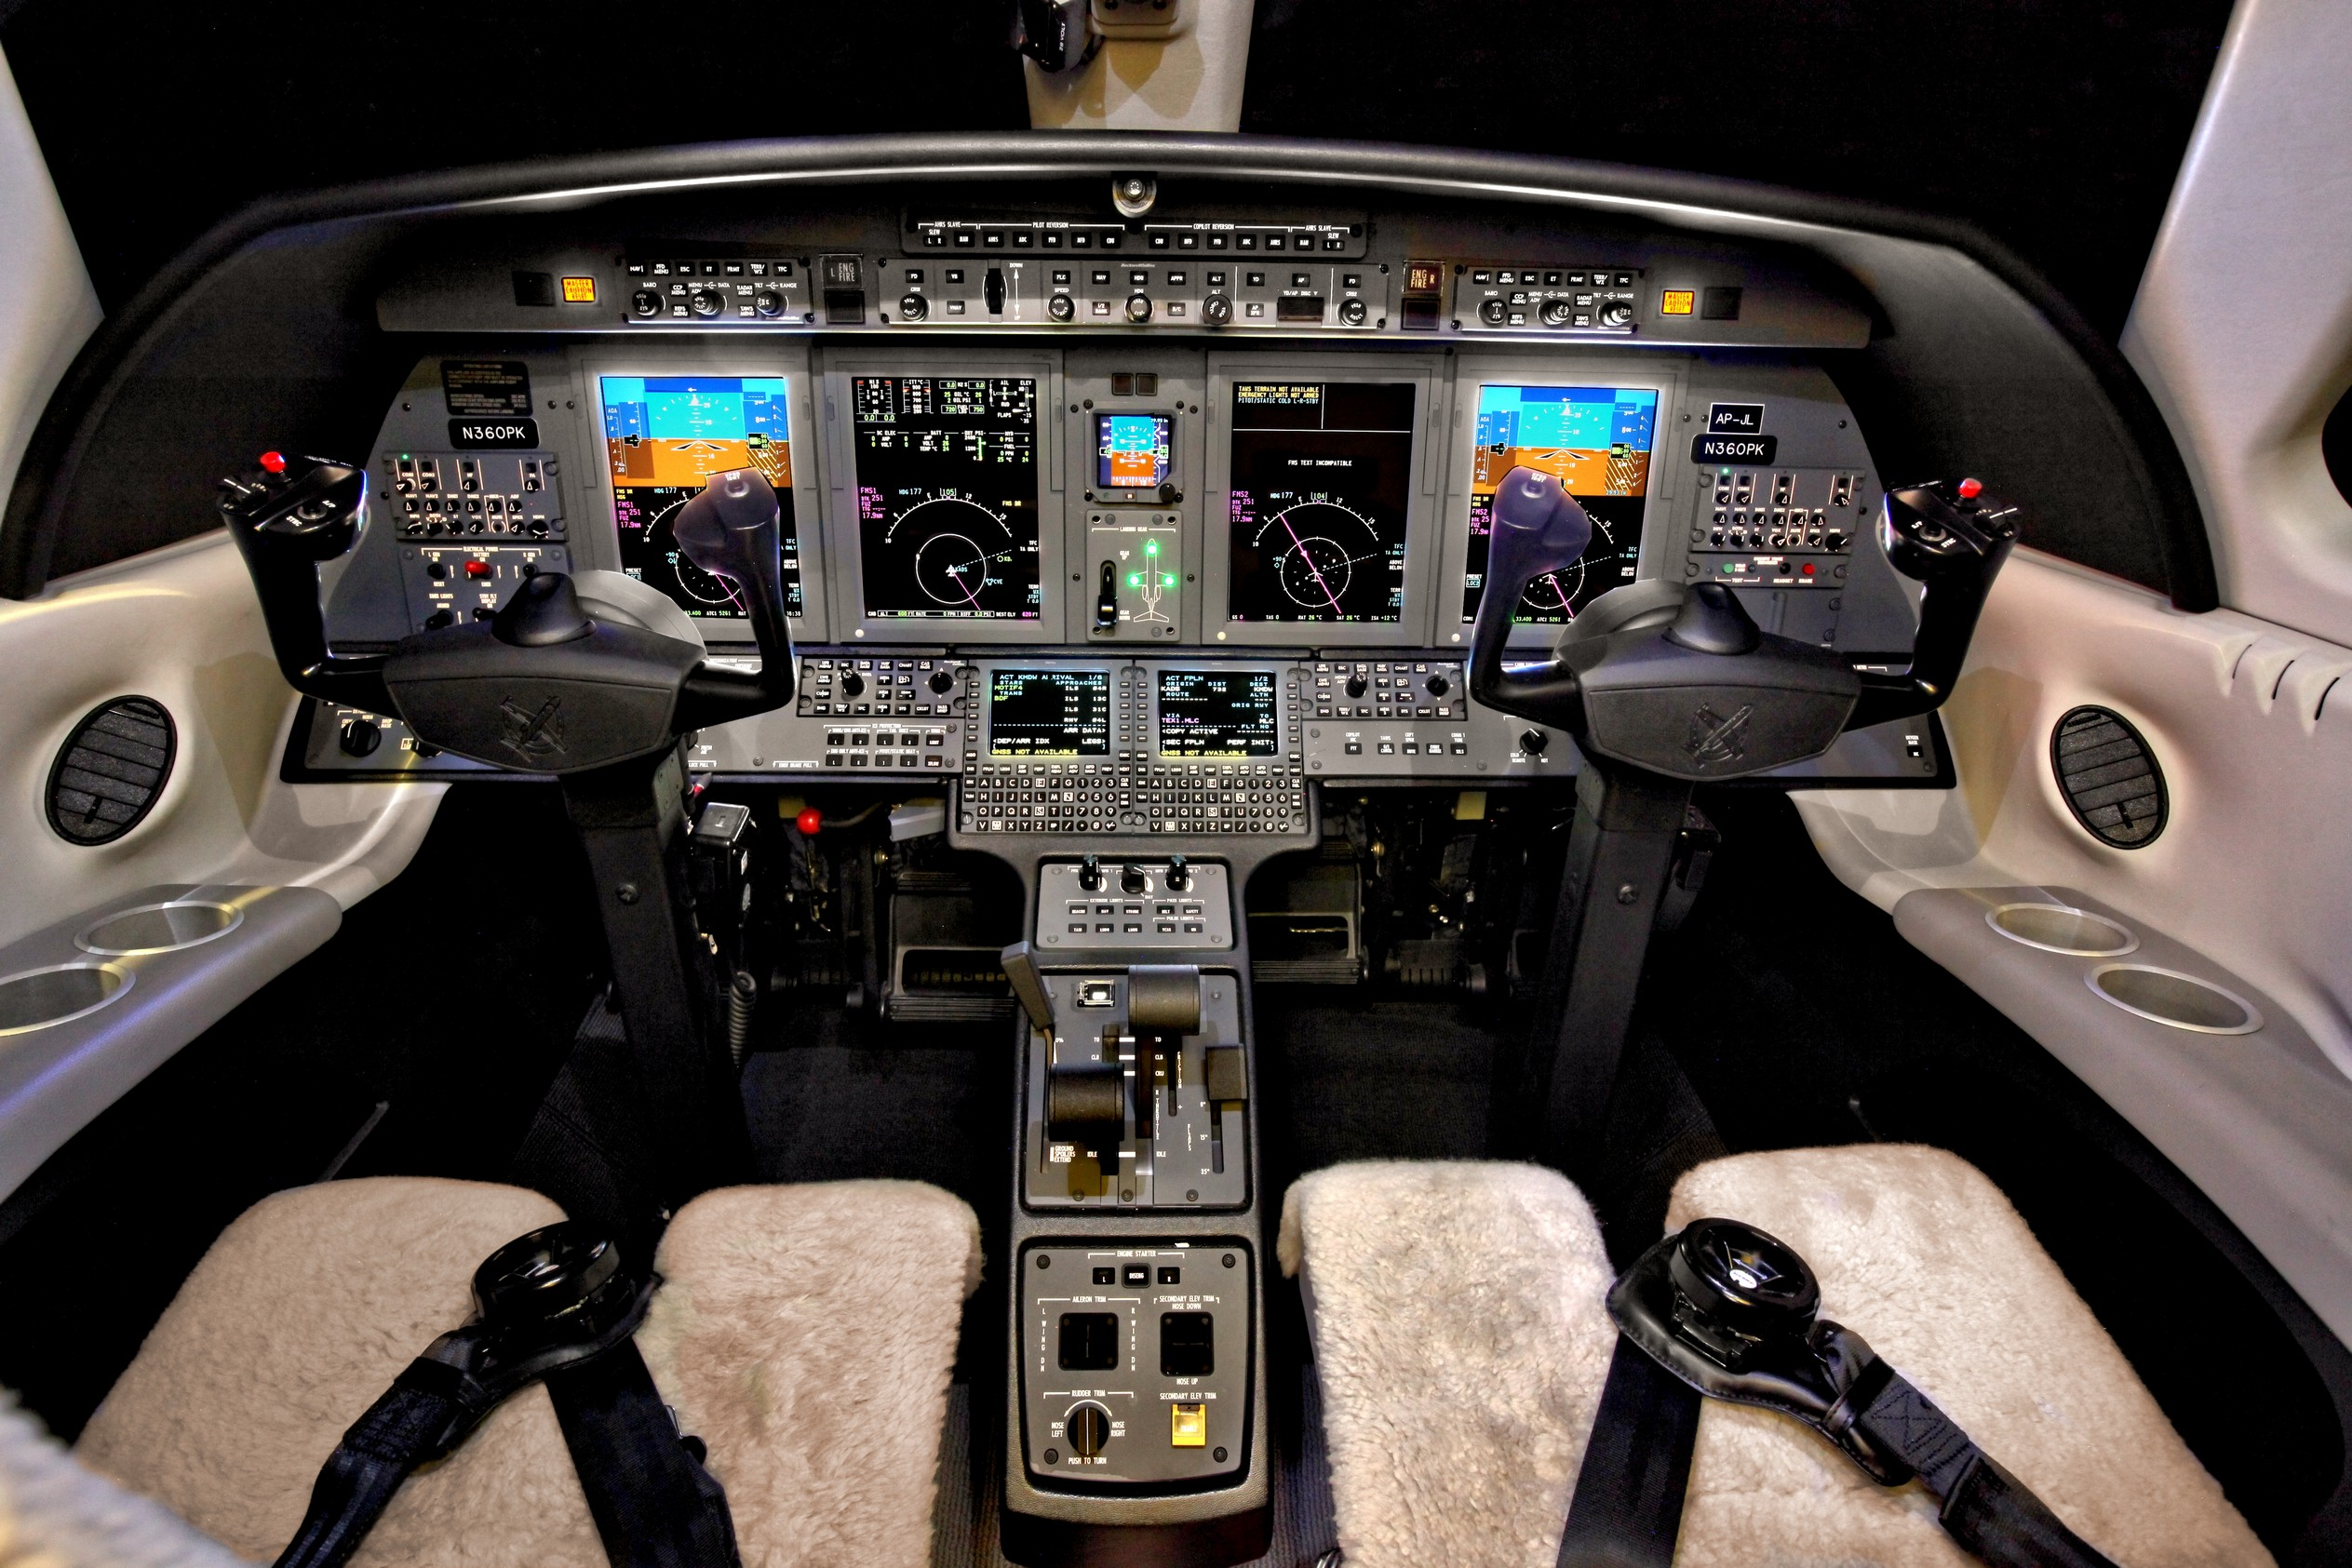 bell helicopter for sale with 2011 Cessna Cj4 Sn 525c 0030 on Bell 47 10 further Bell 407 Civil Utility Helicopter Textron Inc moreover 1983 cessna T210n in addition Eurocopter Ec225 Super Puma in addition Mh 6 Little Bird.